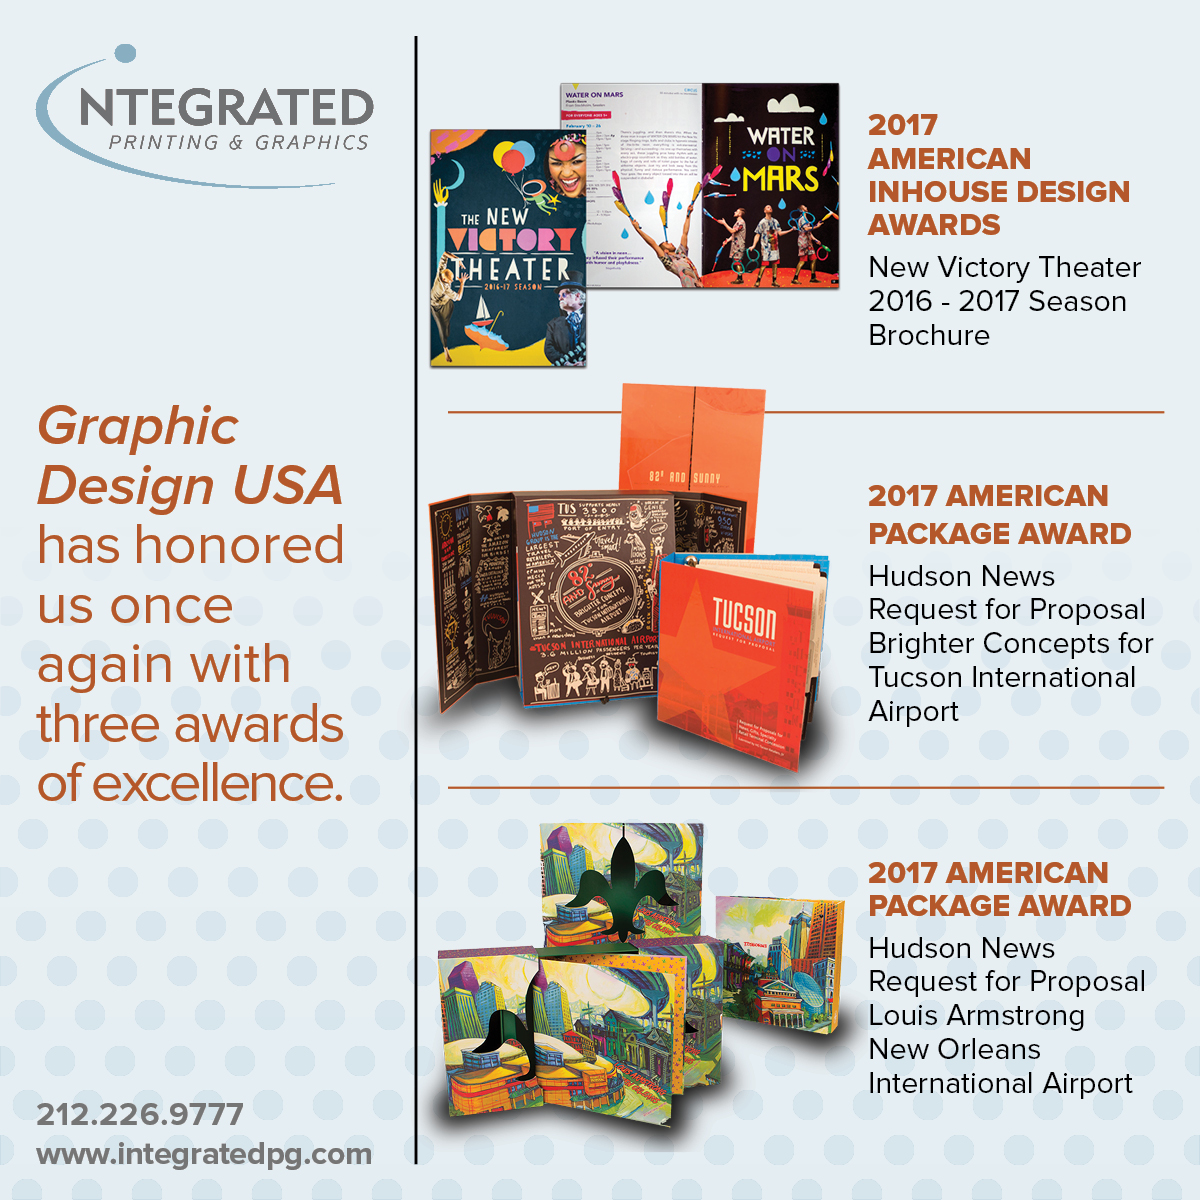 integrated-printing-graphics